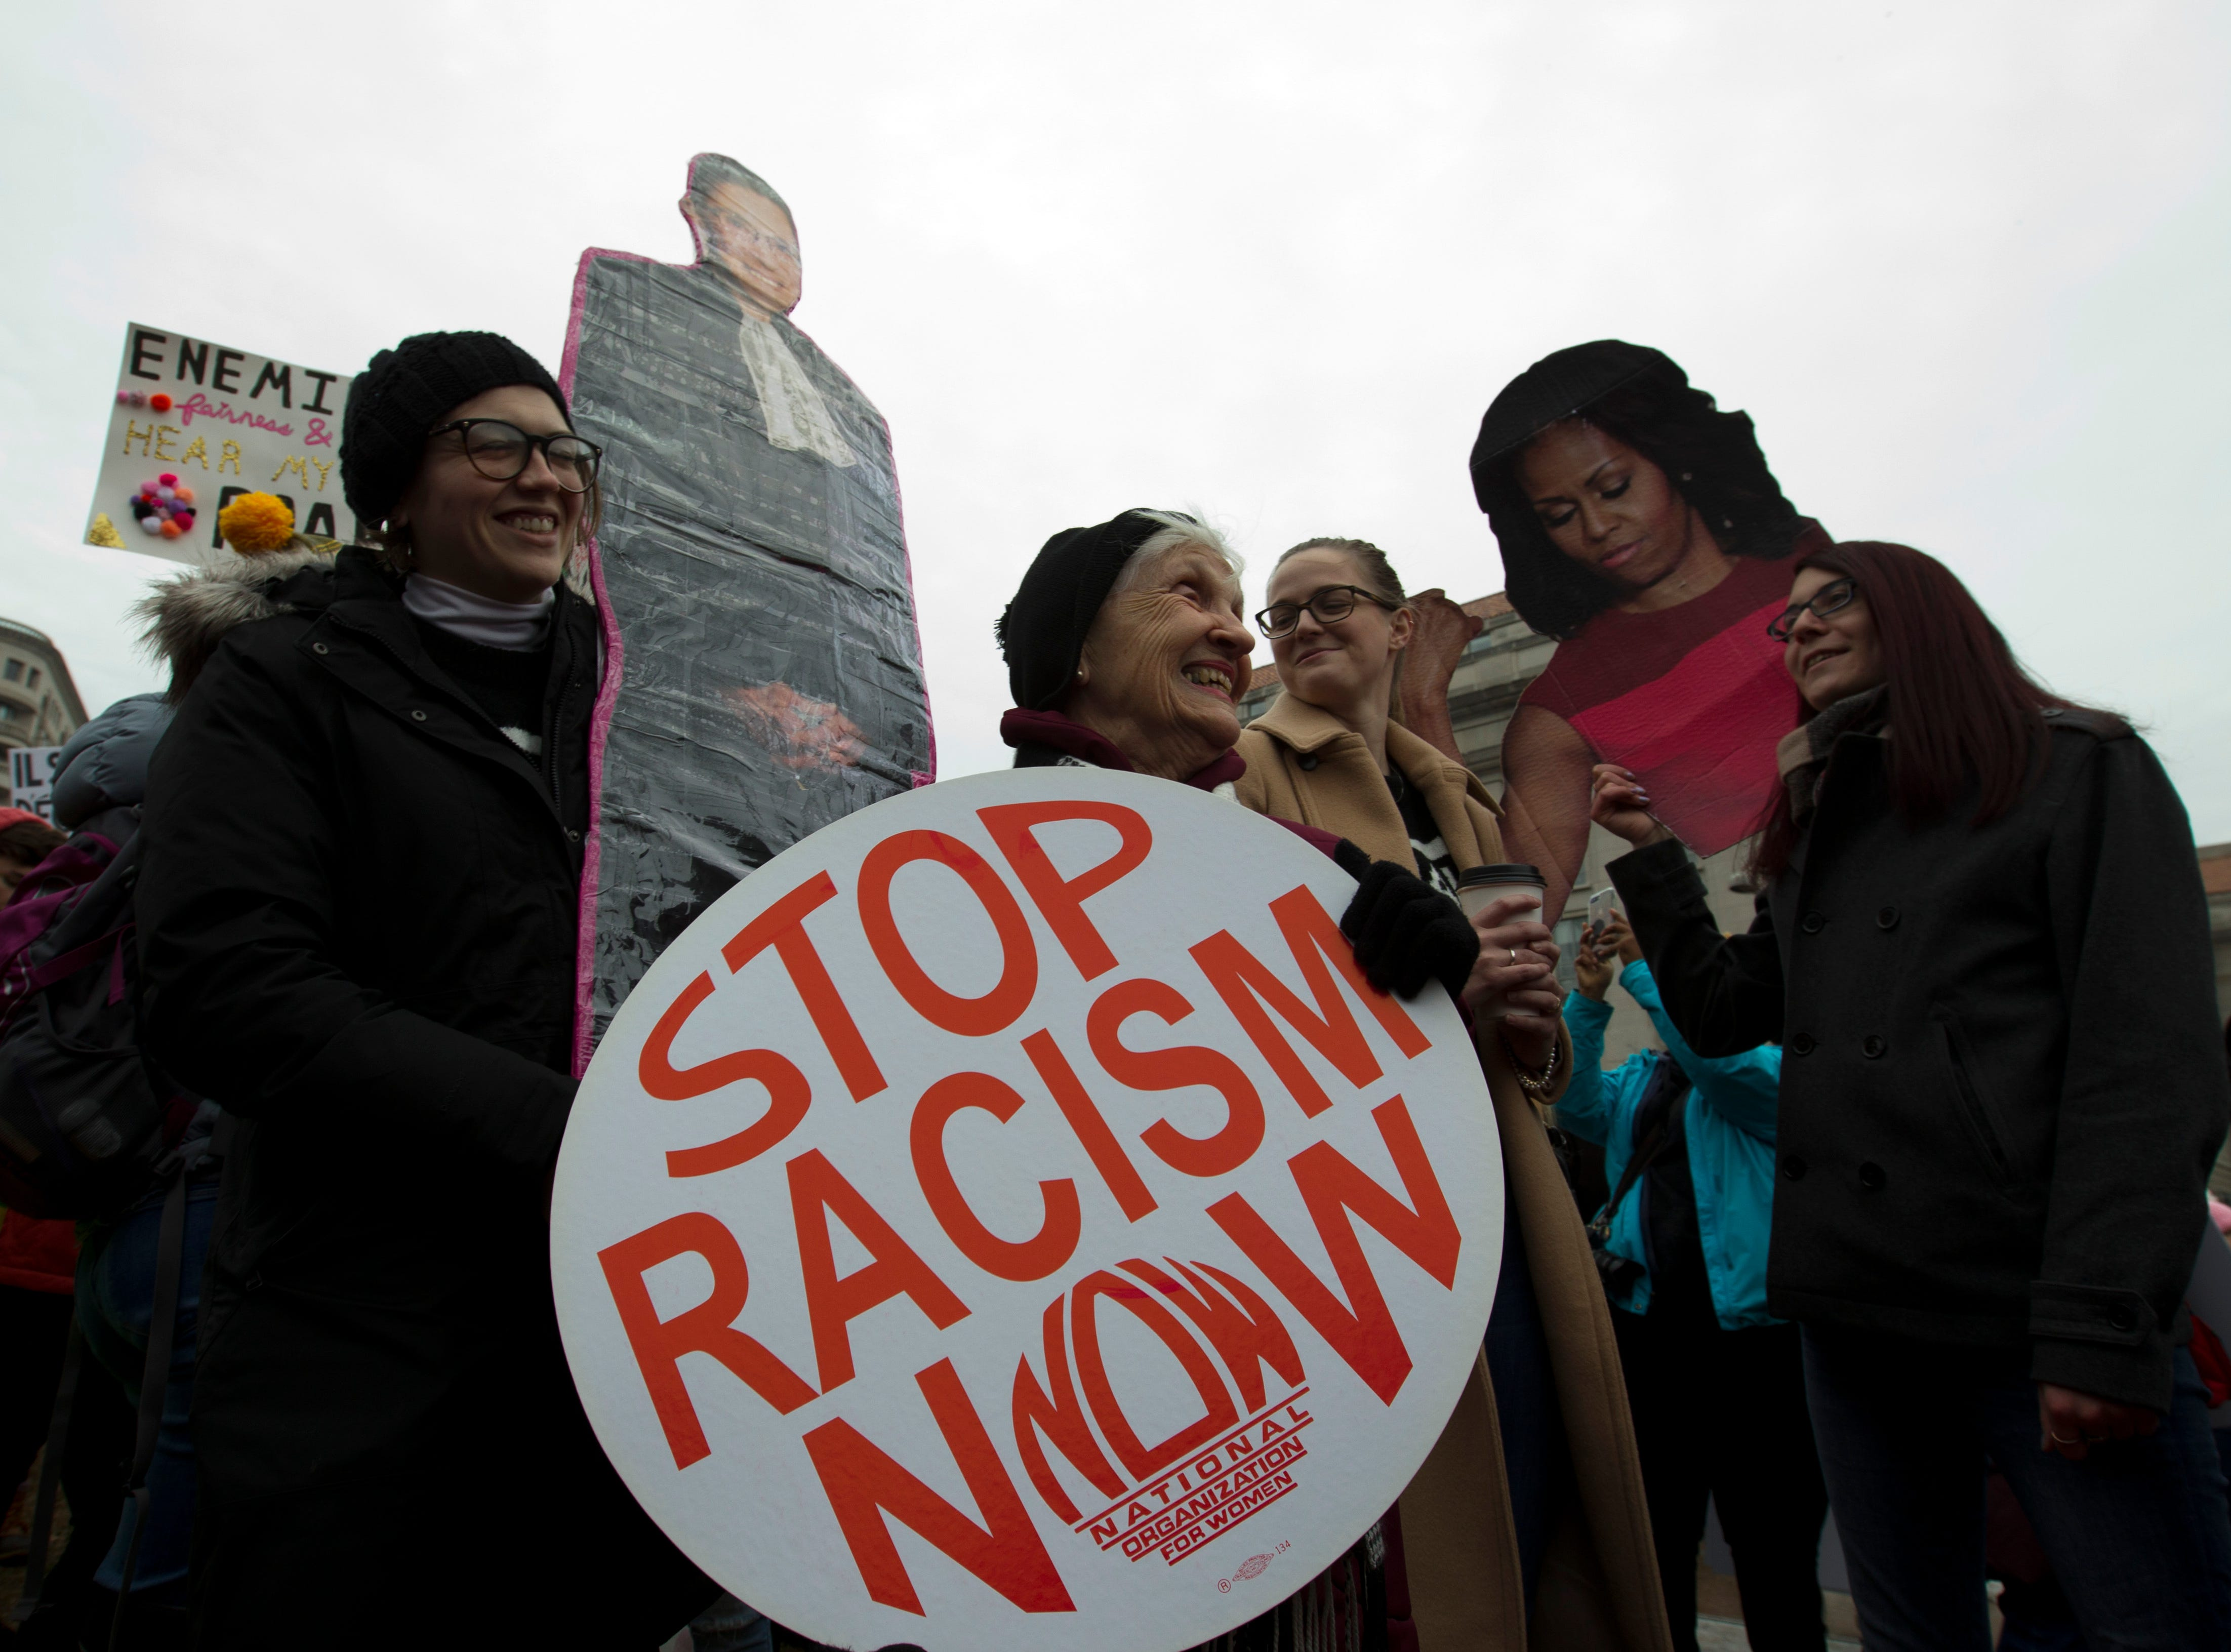 A group hold up signs at freedom plaza during the women's march in Washington on Saturday, Jan. 19, 2019.